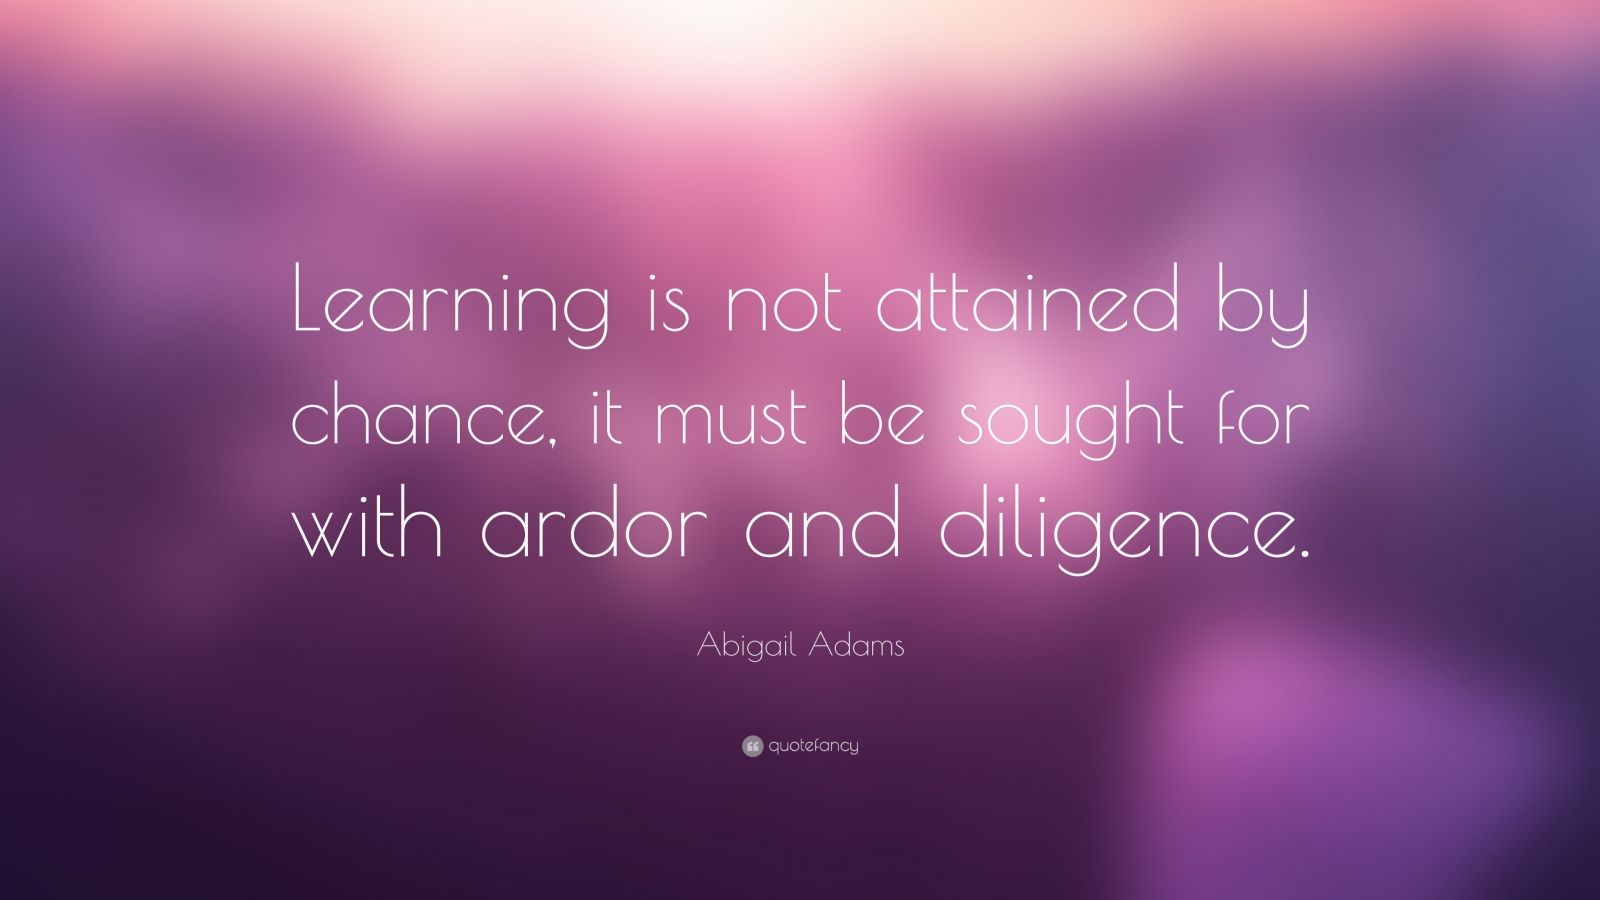 Inspiring Quotes With Wallpapers Abigail Adams Quote Learning Is Not Attained By Chance